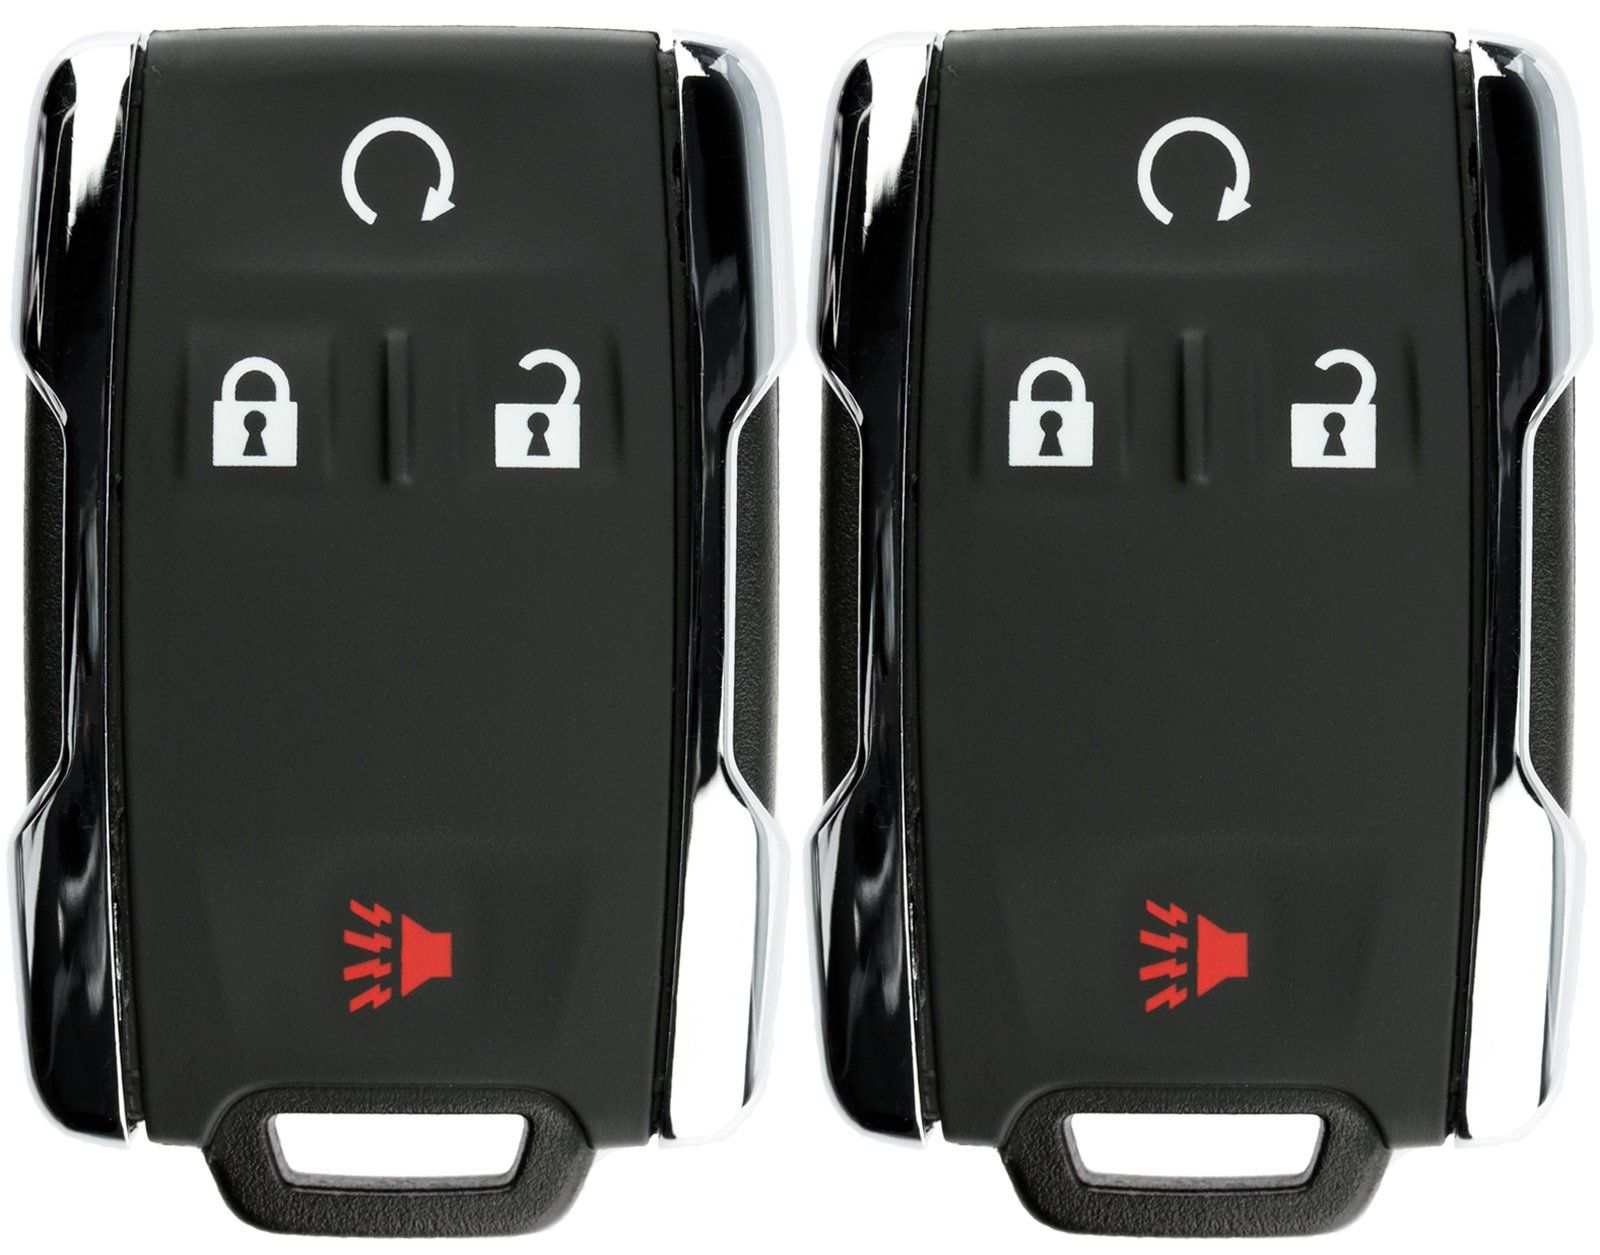 Keylessoption Keyless Entry Remote Control Car Key Fob Replacement For Chevy Gmc M3n 32337100 Pack Of 2 Remote Control Cars Key Fob Replacement Car Key Fob